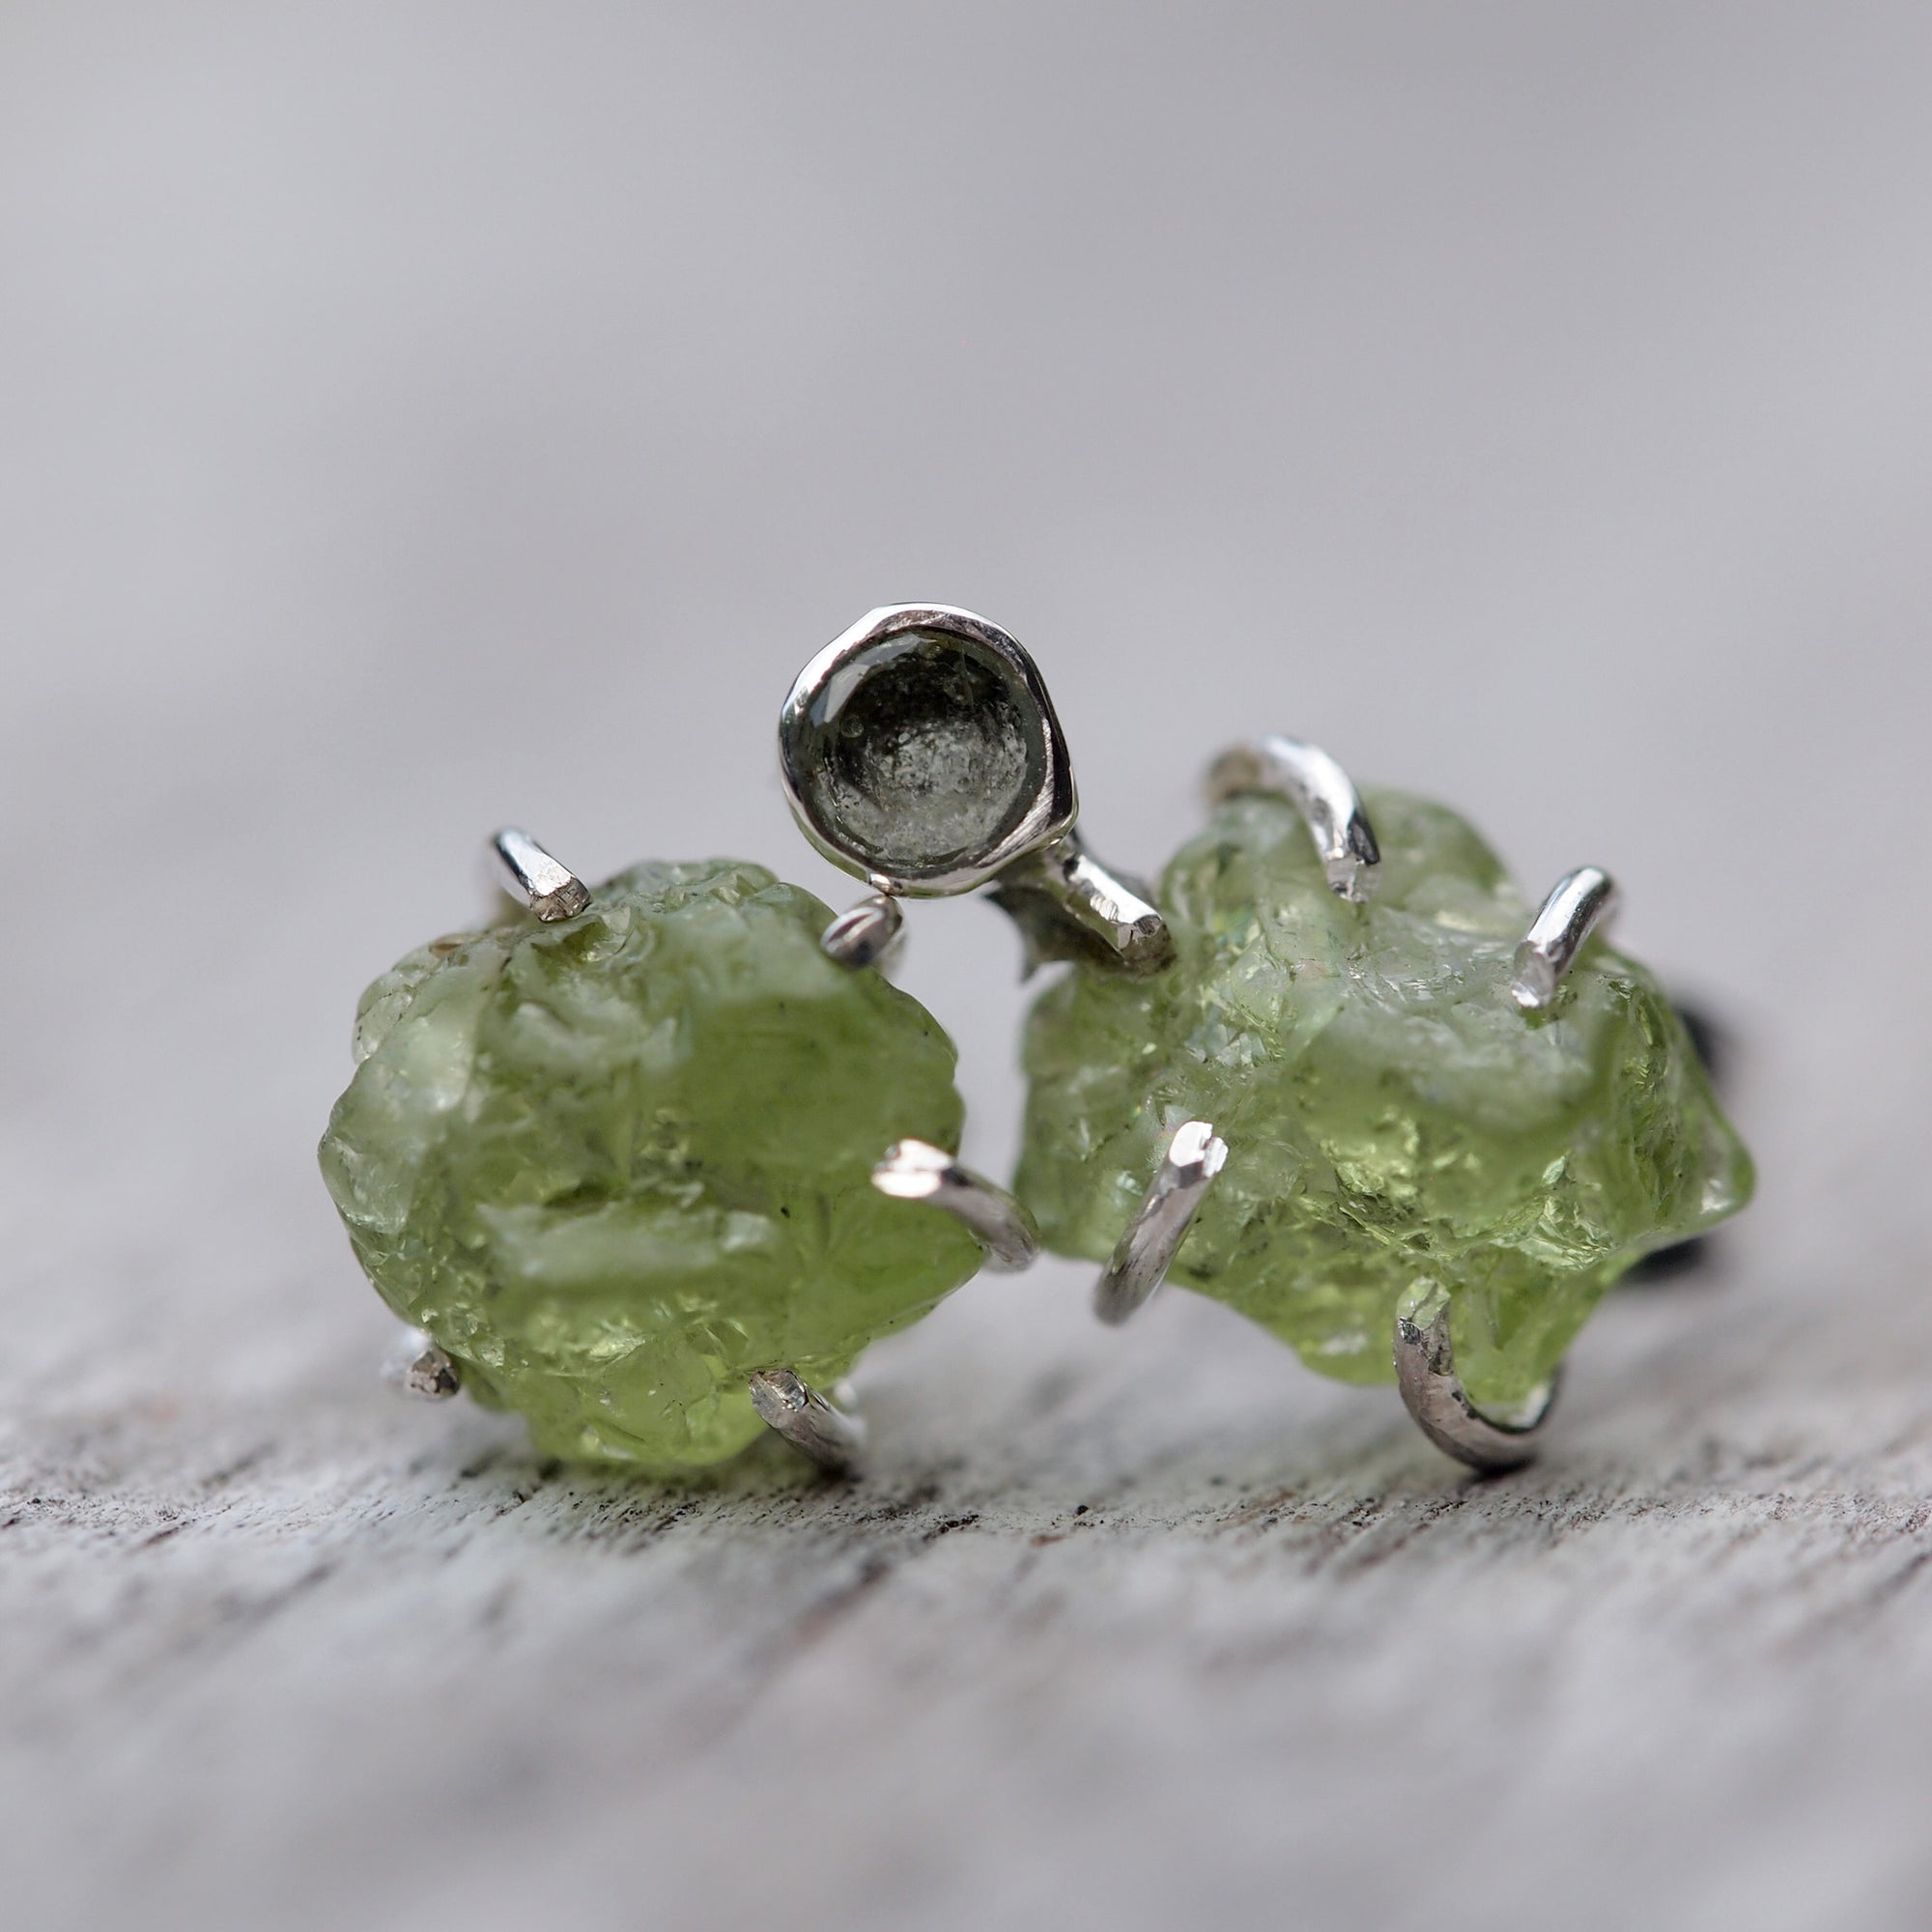 Arizona Peridot Mismatched Earrings - Gardens of the Sun Jewelry